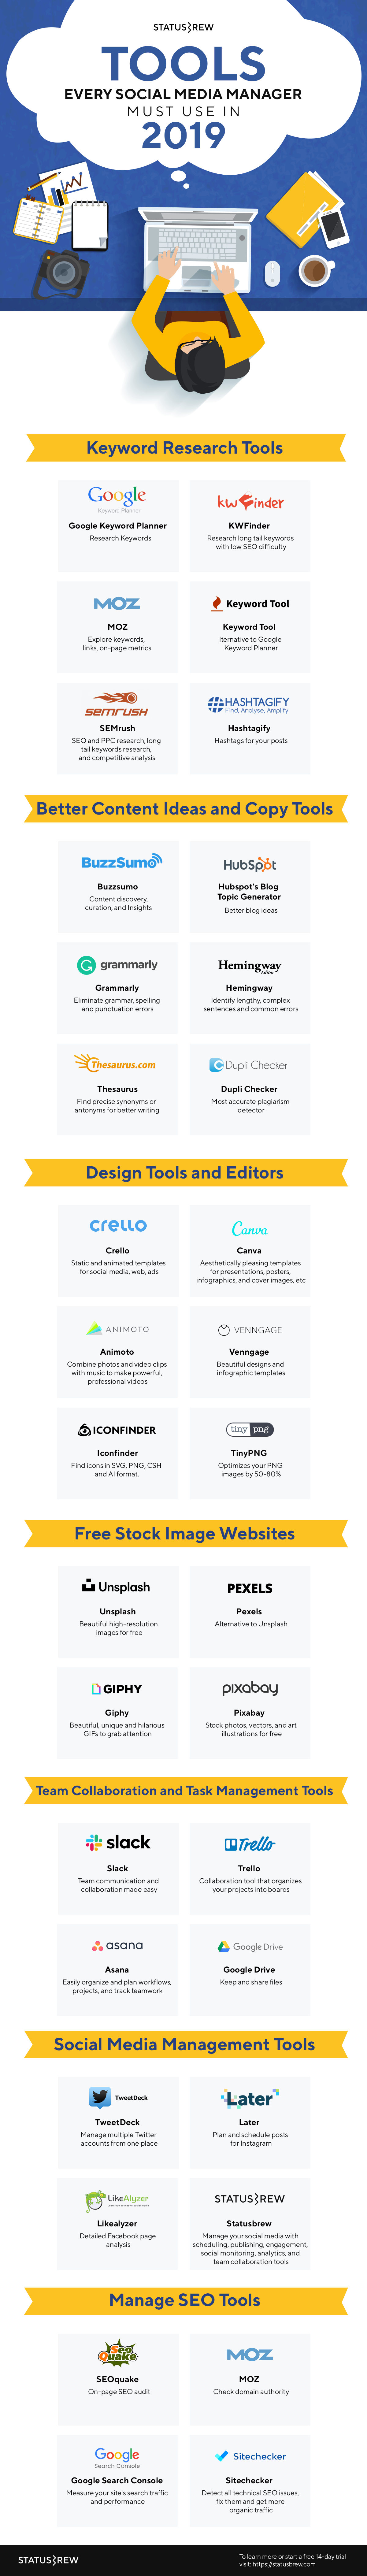 Tools for social media managers infographic